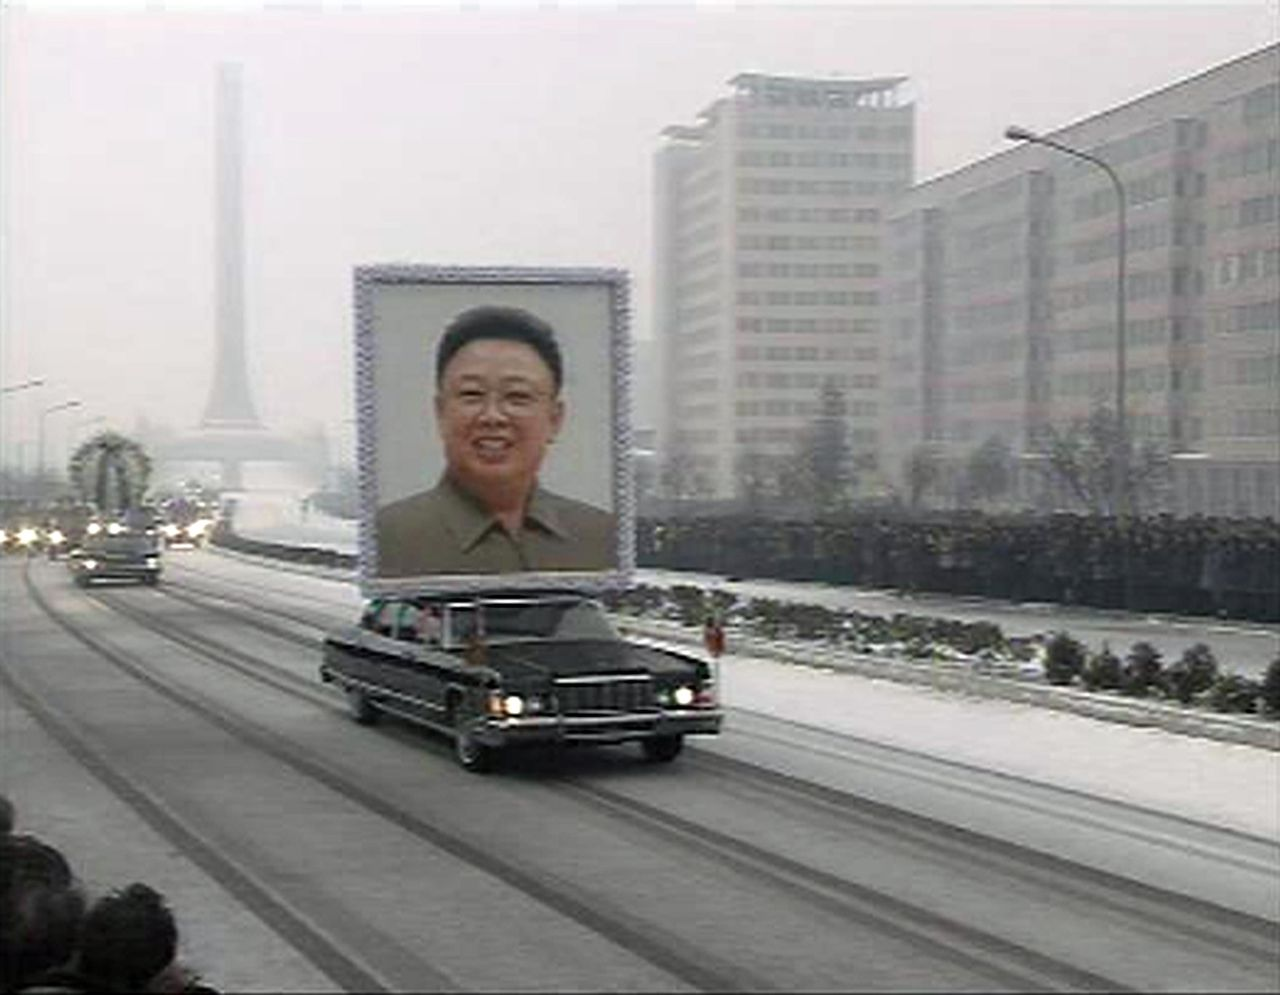 """A limousine carrying a portrait of late North Korean leader Kim Jong-il leads his funeral procession past crowds on a street in Pyongyang in this still image taken from video December 28, 2011. North Korea's military staged a huge funeral procession on Wednesday in the snowy streets of the capital Pyongyang for its deceased """"dear leader,"""" Kim Jong-il, readying a transition to his son, Kim Jong-un. REUTERS/KRT via Reuters TV (NORTH KOREA - Tags: POLITICS OBITUARY TPX IMAGES OF THE DAY) NORTH KOREA OUT. NO COMMERCIAL OR EDITORIAL SALES IN NORTH KOREA. NO SALES. NO ARCHIVES. FOR EDITORIAL USE ONLY. NOT FOR SALE FOR MARKETING OR ADVERTISING CAMPAIGNS. NORTH KOREA OUT. NO COMMERCIAL OR EDITORIAL SALES INNORTH KOREA"""